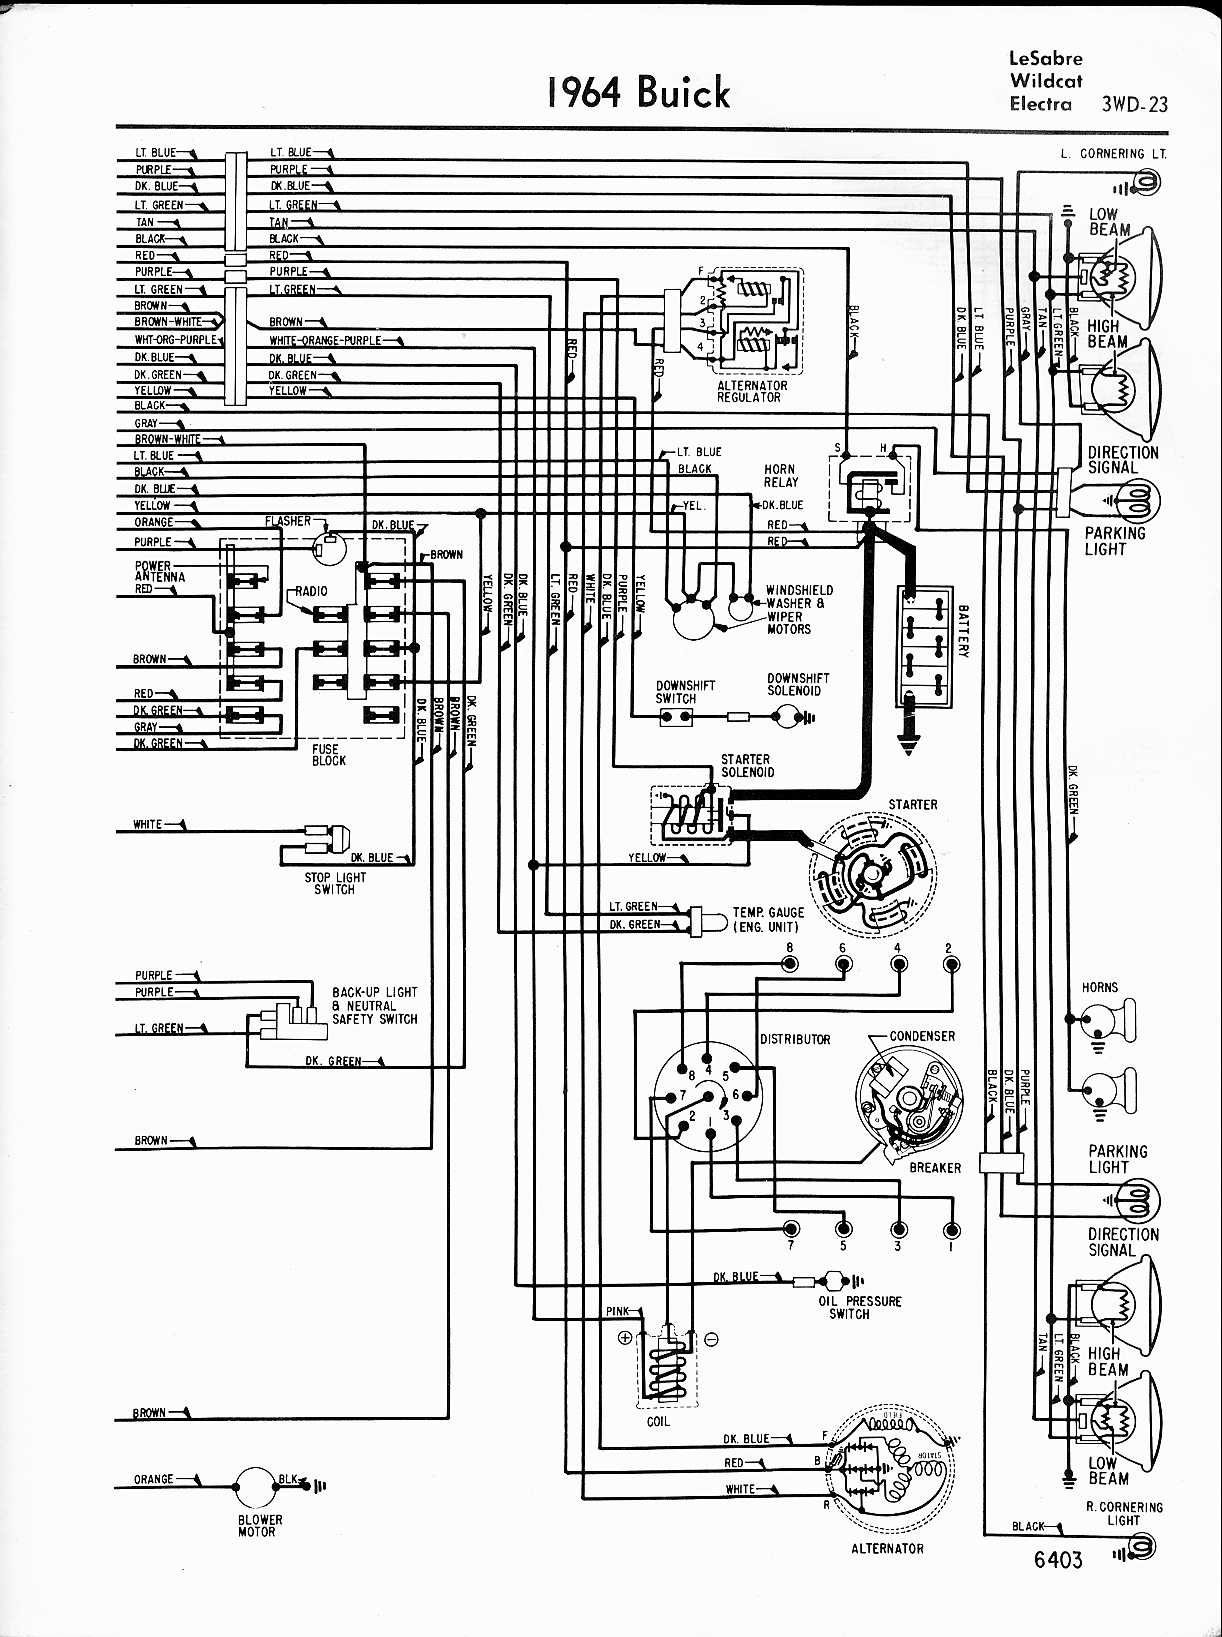 Kancil Power Window Wiring Diagram | Wiring Liry on power window parts diagram, 2000 saturn sl1 parts diagram, 1970 cadillac vacuum diagram, mass air flow sensor diagram, 2003 ford f-150 electrical diagram, power window cable diagram, aircraft propeller diagram, car window diagram, fuse diagram, 2004 nissan altima serpentine belt diagram, circuit diagram, power window switch diagram, power window operation, 2006 sebring convertible electrical diagram, electric window switch diagram, power window assembly, 2004 lincoln navigator air suspension diagram, power steering diagram, ford power window diagram, power window remote control,